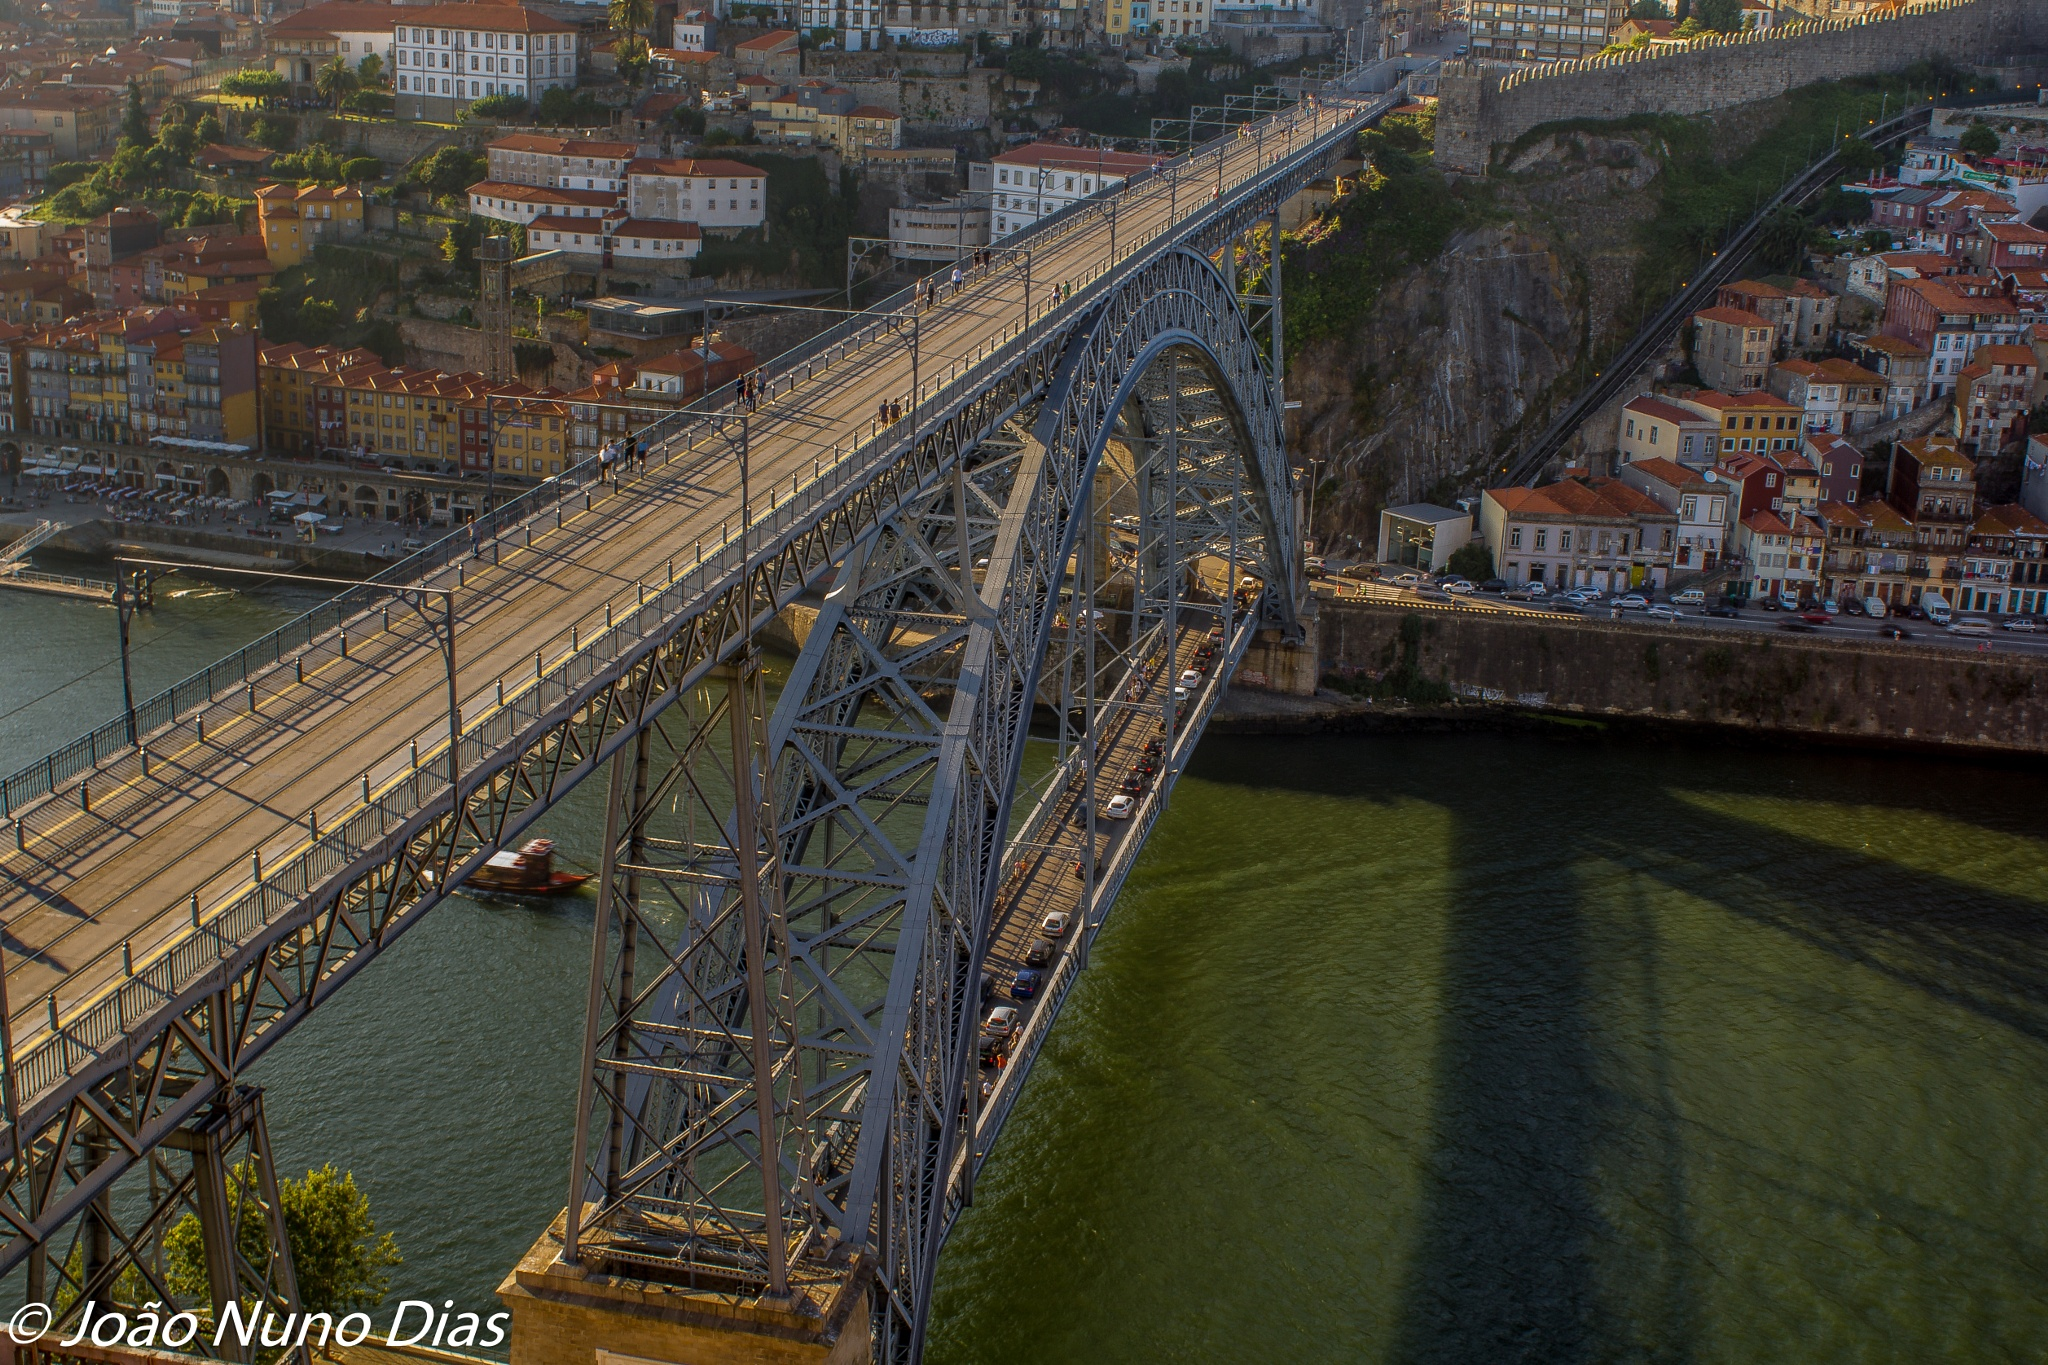 Oporto iconic bridge by Nuno Dias